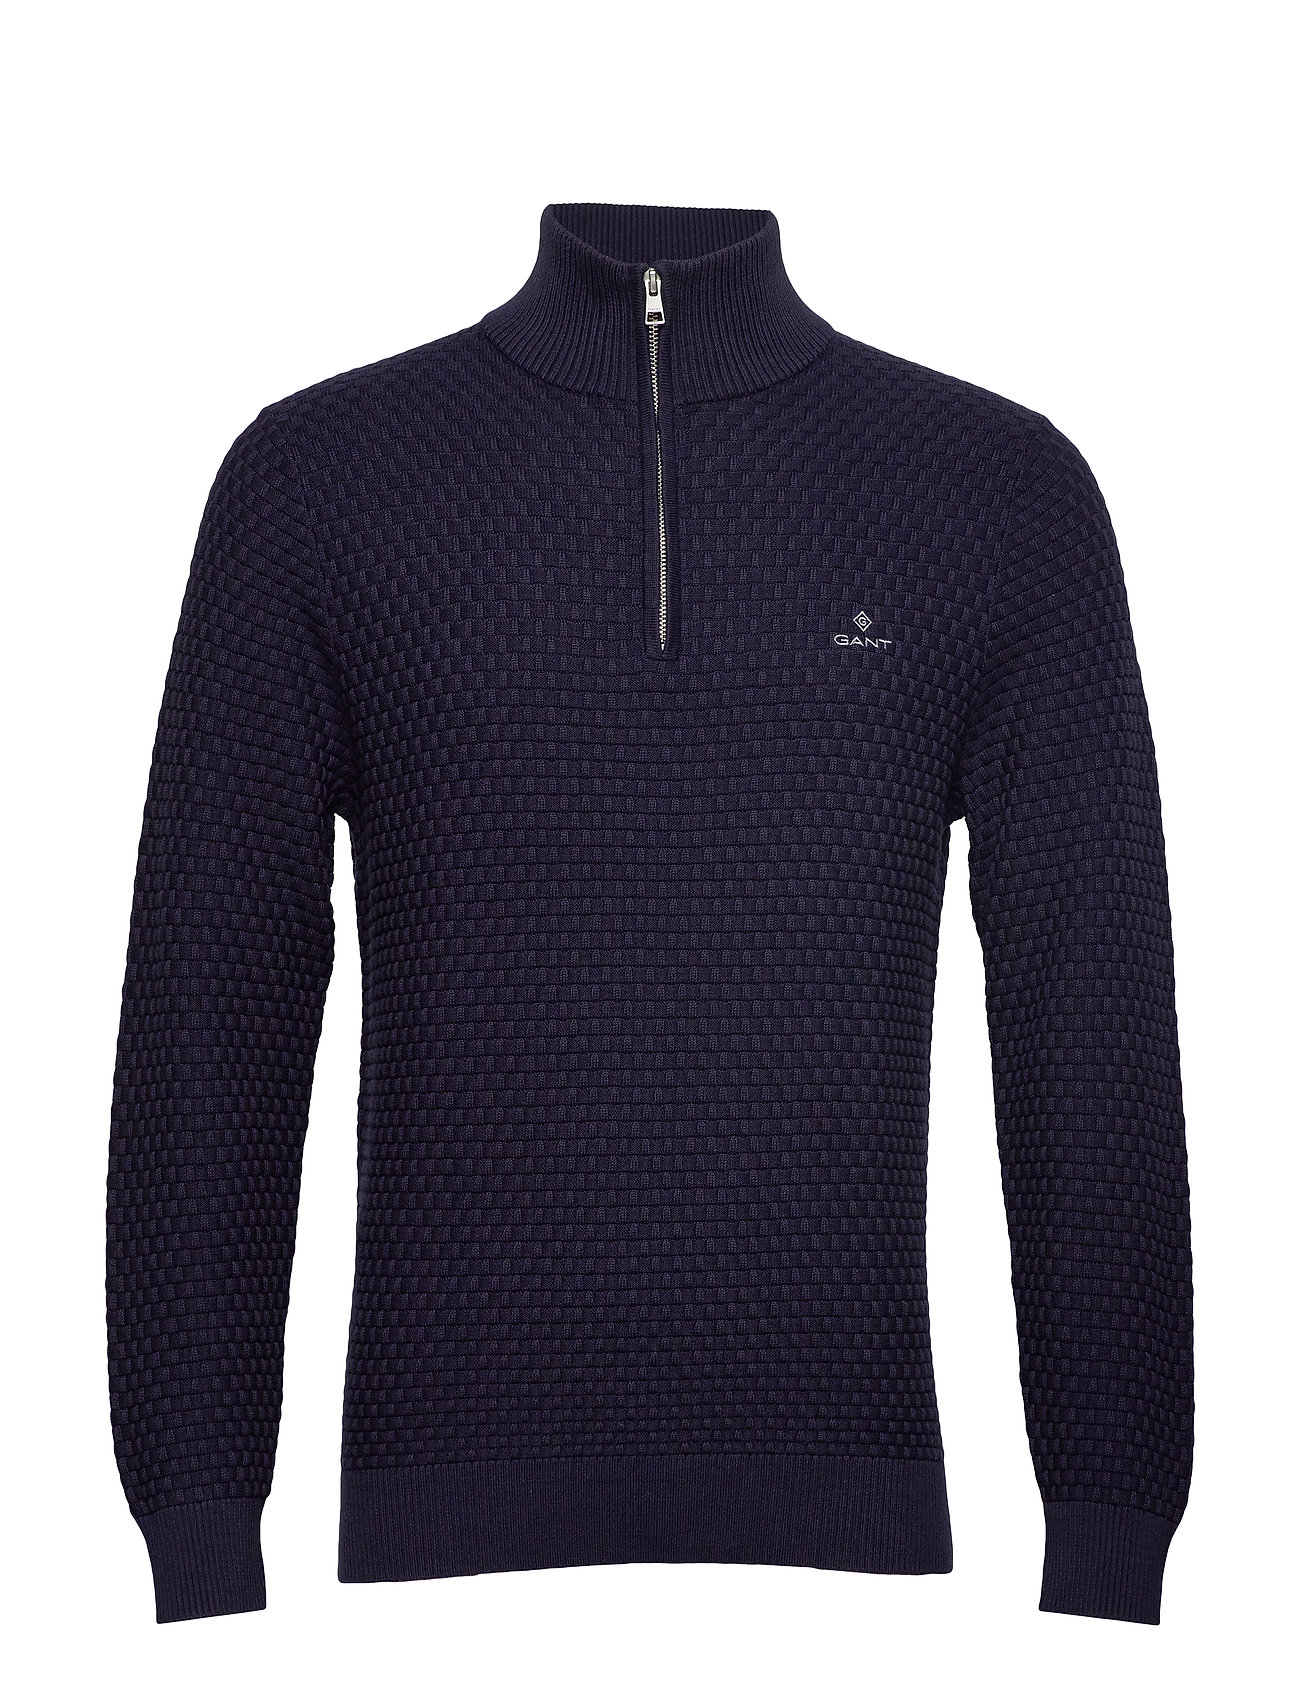 GANT D1. SIGNATURE WEAVE HALF ZIP - EVENING BLUE